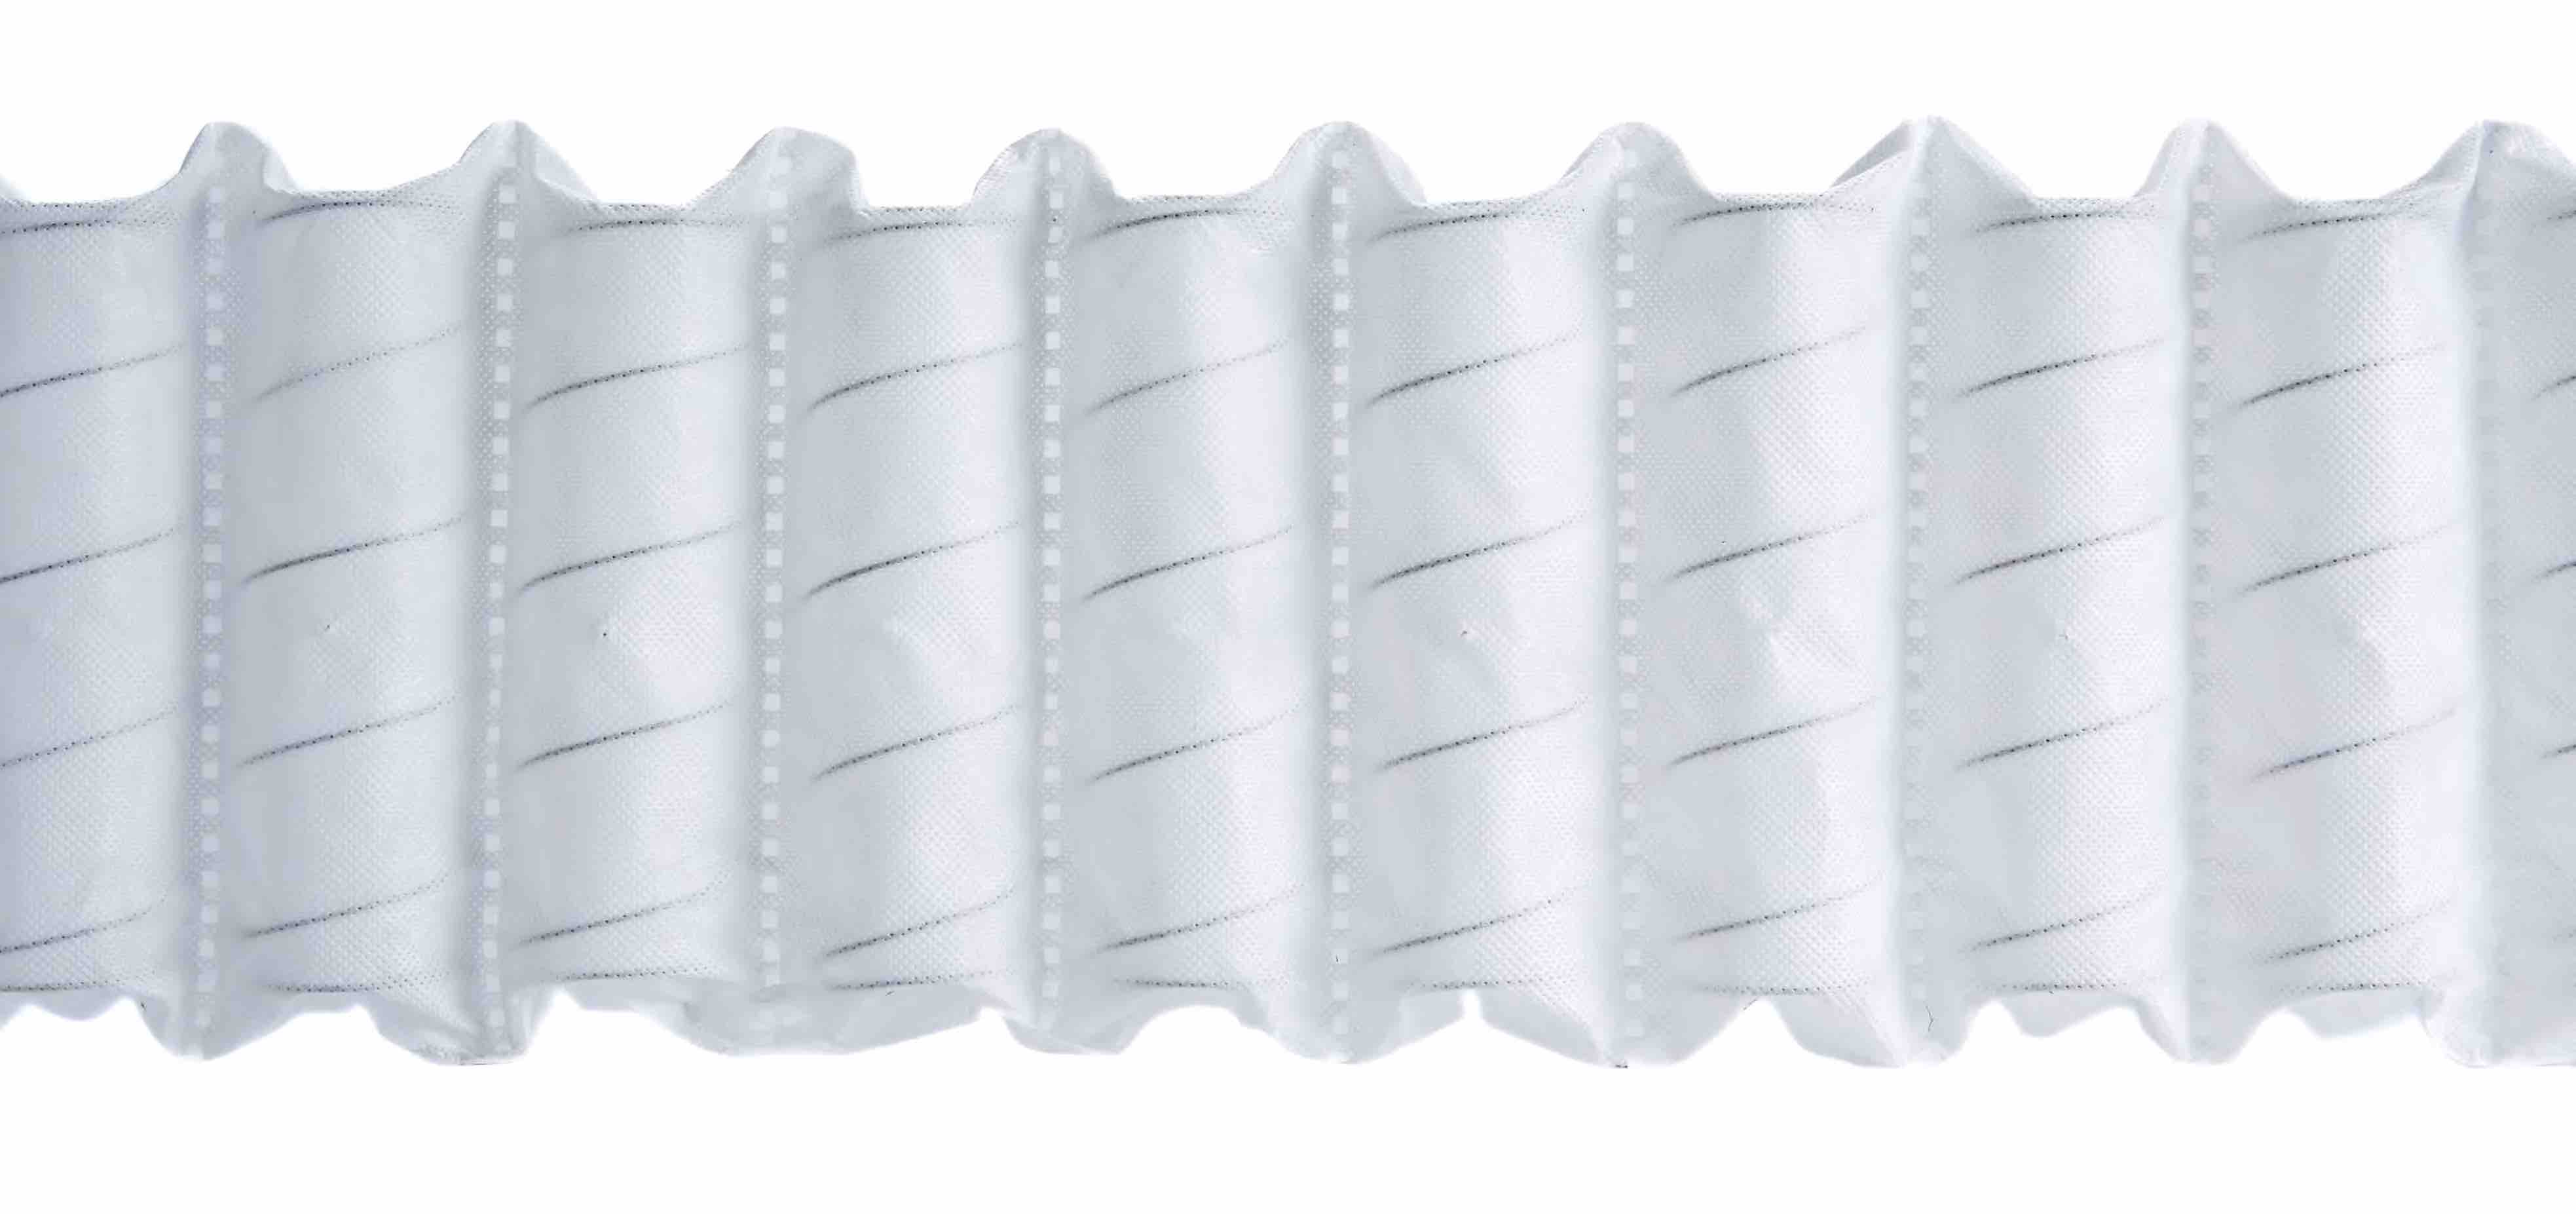 What You Need To Know About Pocket Spring Mattresses